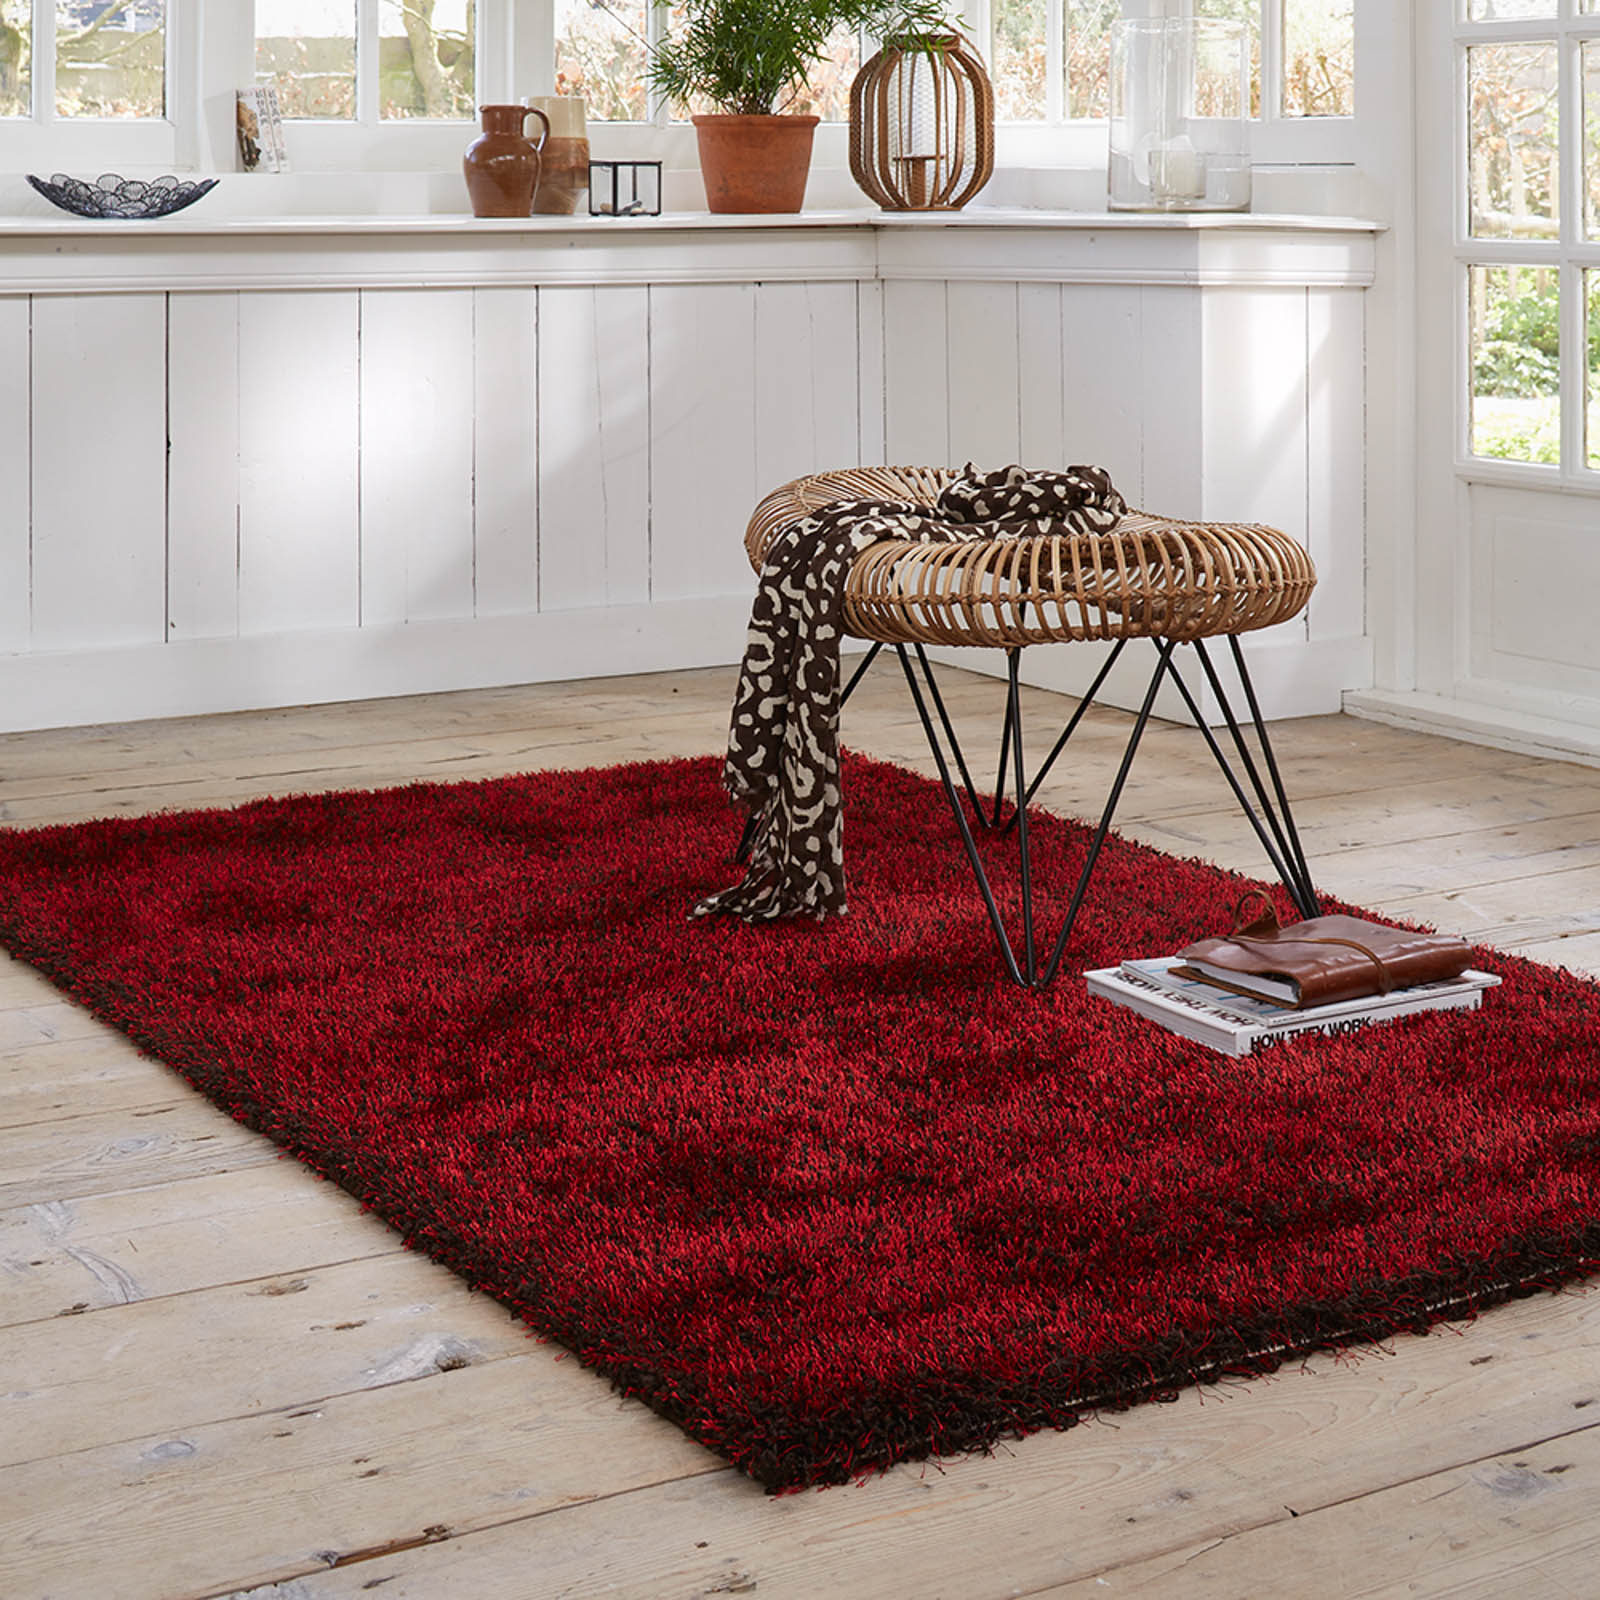 Esprit Cosy Glamour Rugs 0400 81 Red